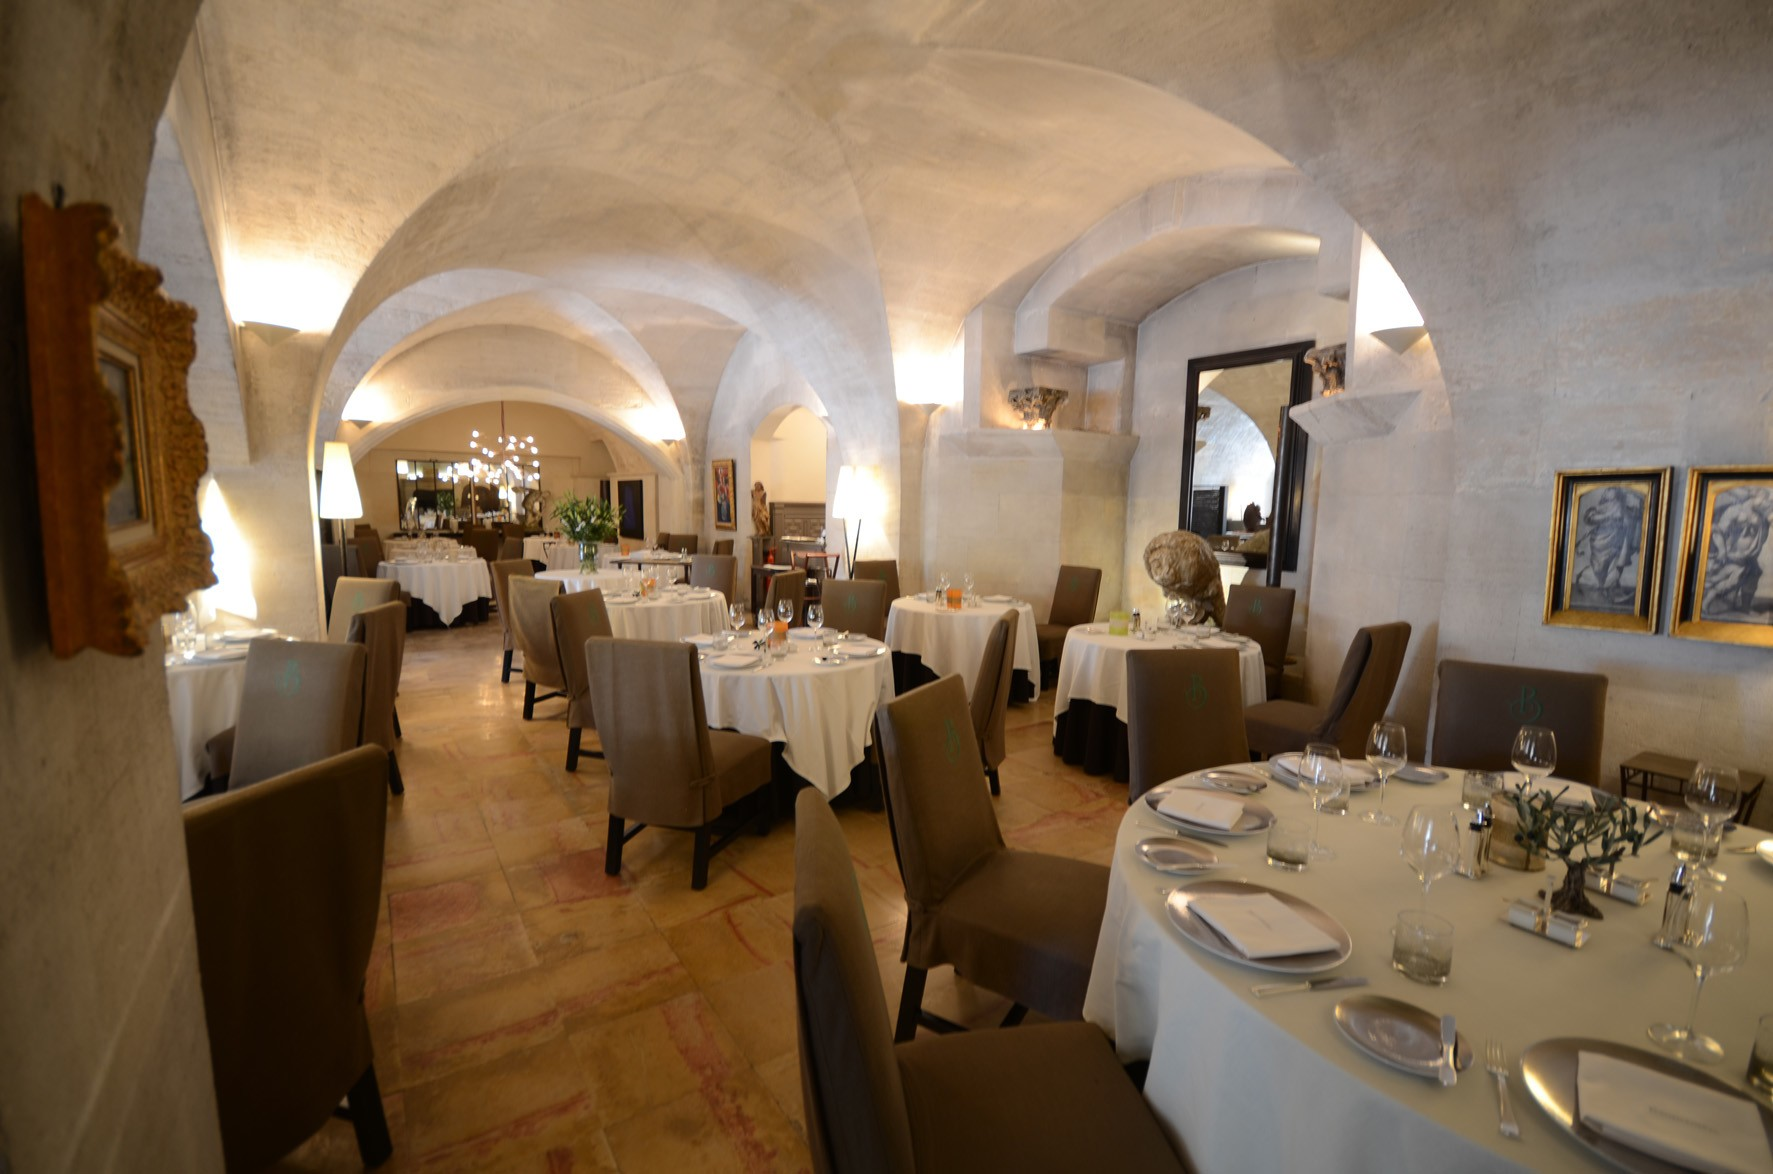 Hotels in the surroundings baumani re les baux de provence - Office de tourisme les baux de provence ...